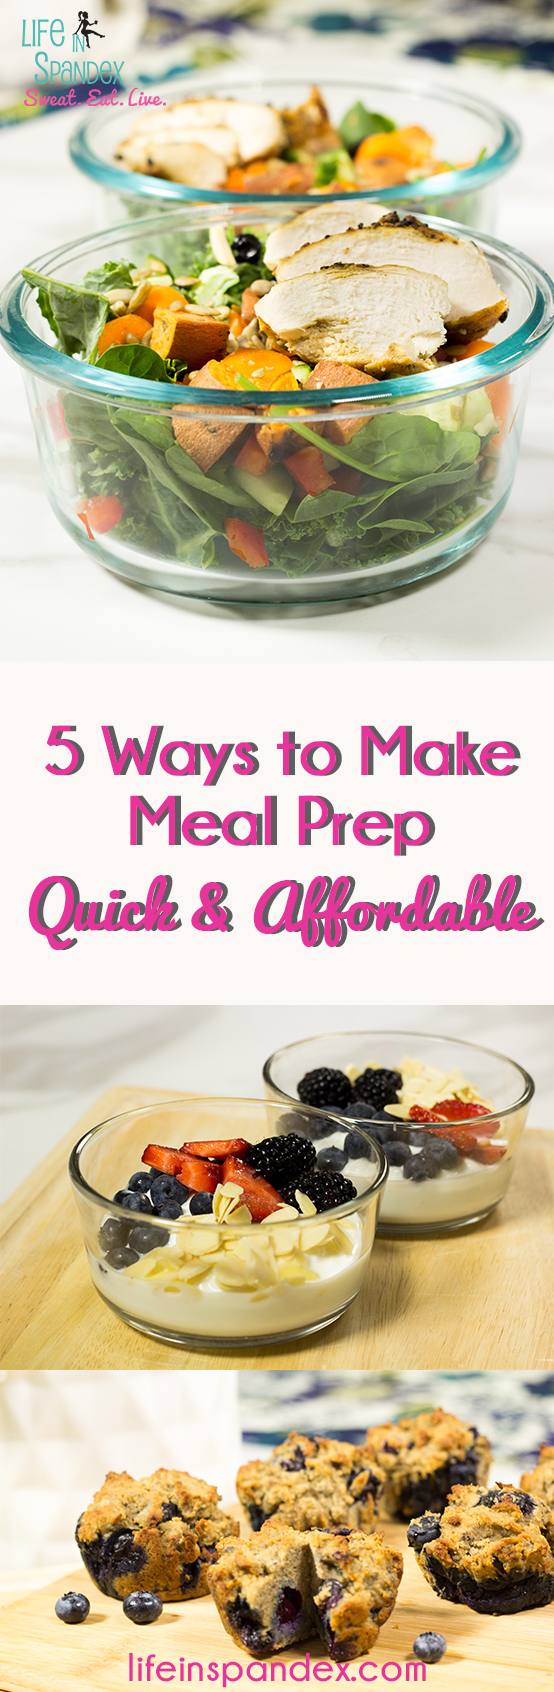 5 ways to make meal prep quick and affordable